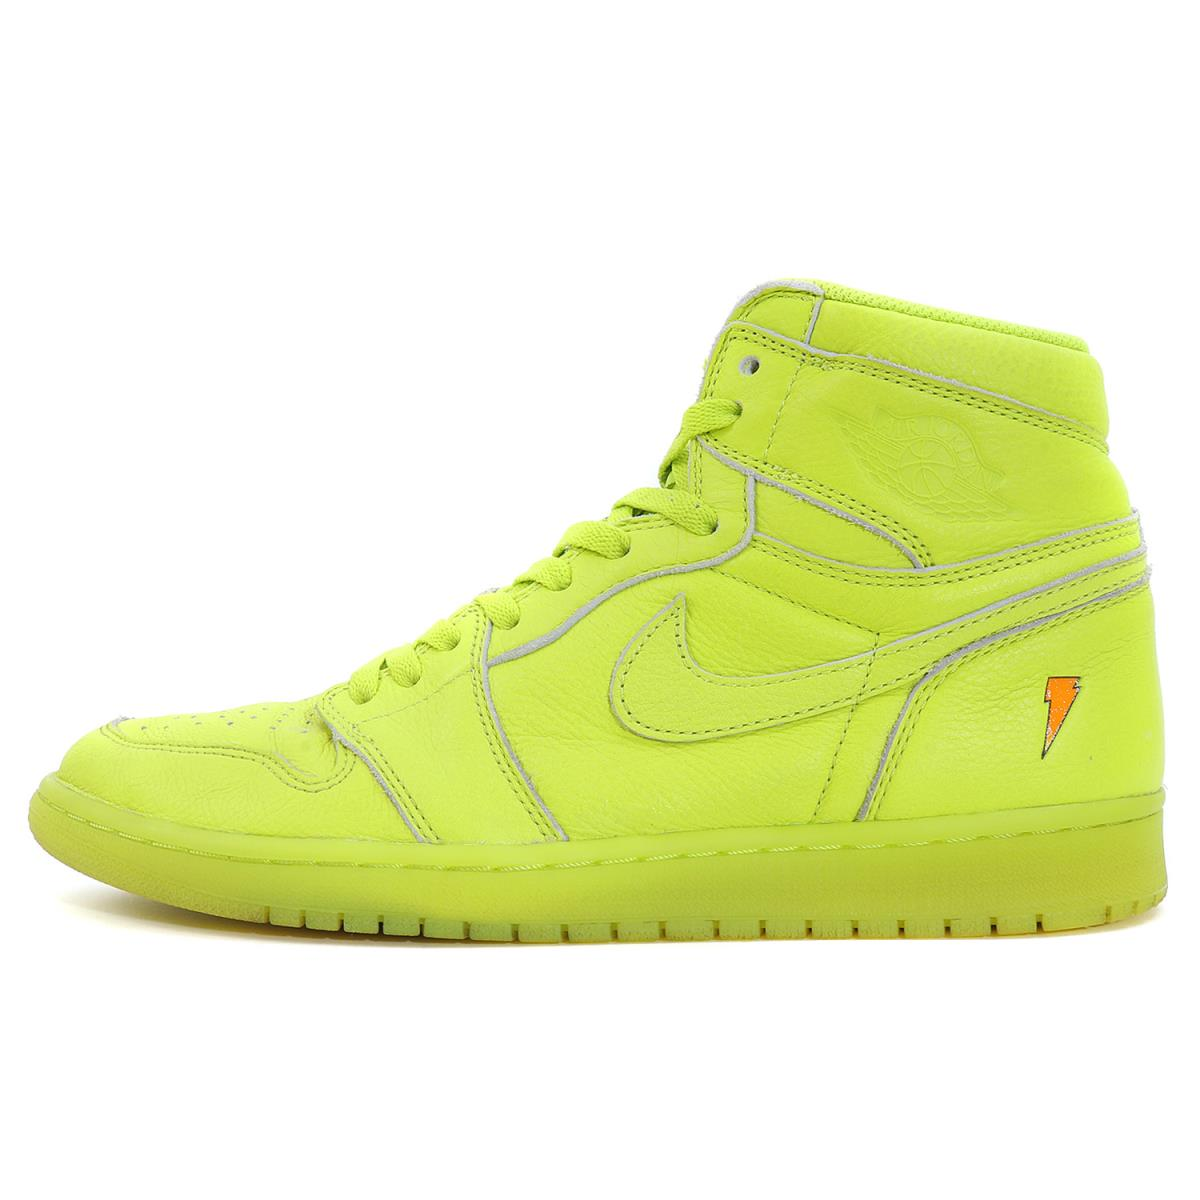 best supplier top fashion classic fit NIKE (Nike) AIR JORDAN 1 RETRO HIGH OG G8RD GATORADE LEMON(AJ5997-345)  cyber US11(29cm)